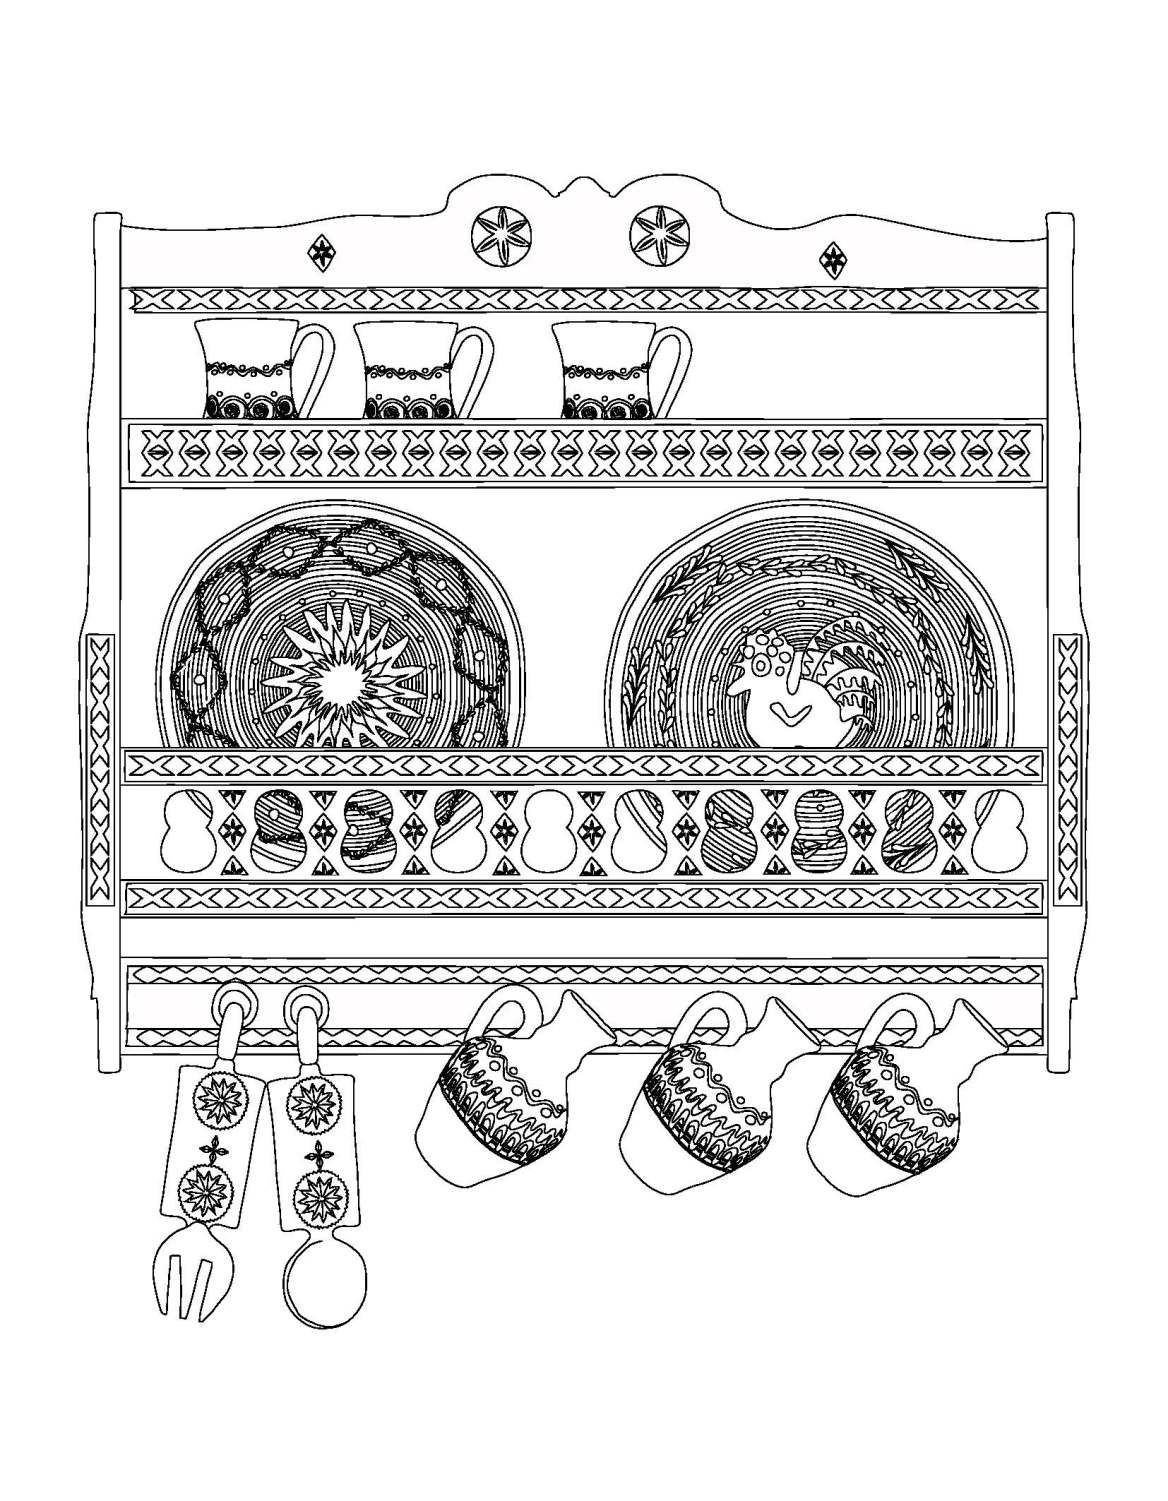 De Colorat Romania Decolorat Coloringpages Drawings